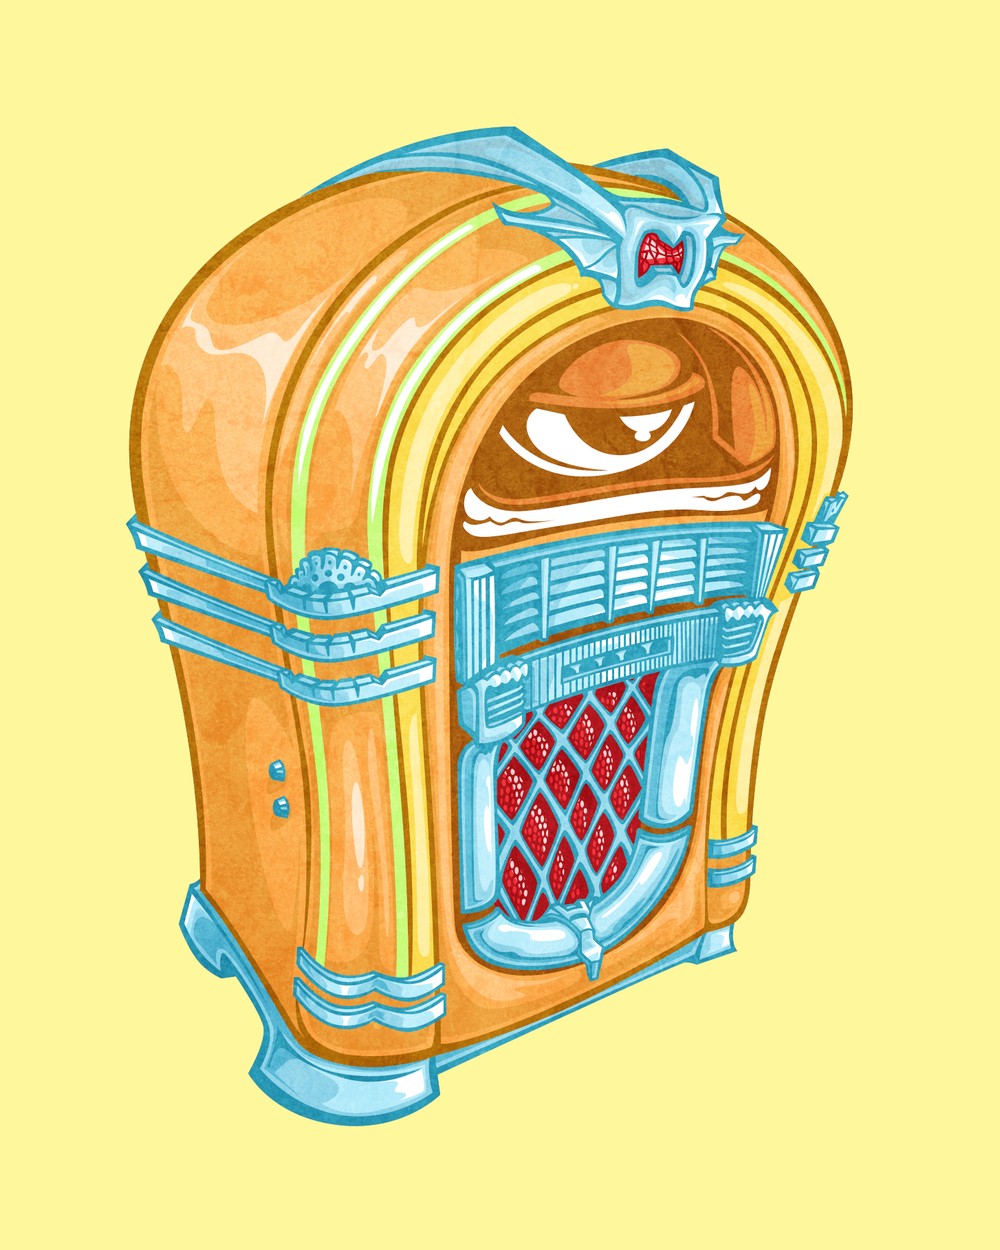 ...stereo sound jukebox character...